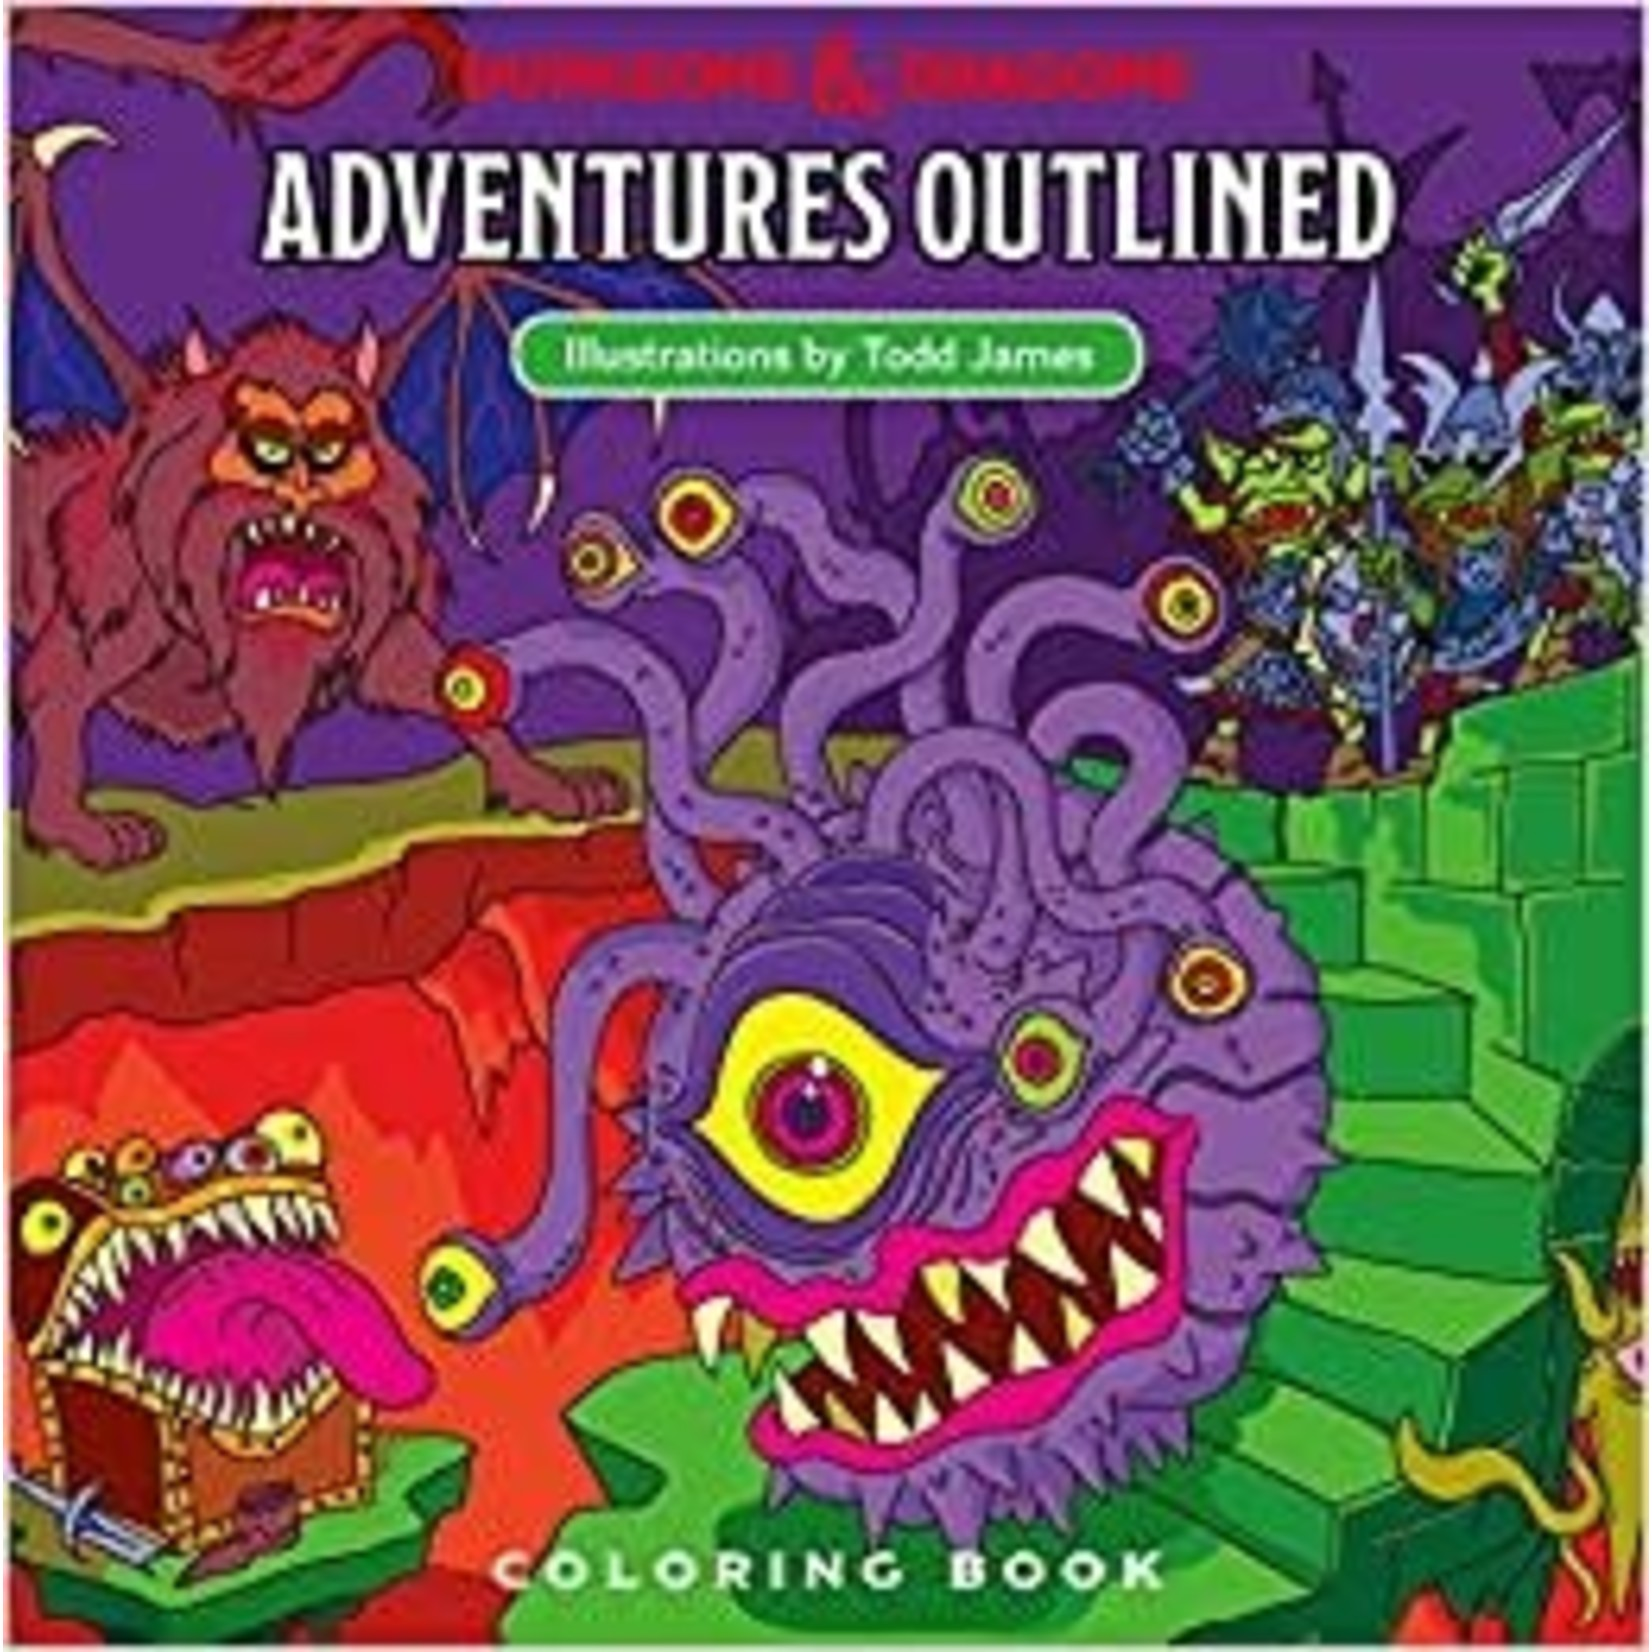 Dungeons & Dragons D&D Adventures Outlined Coloring Book